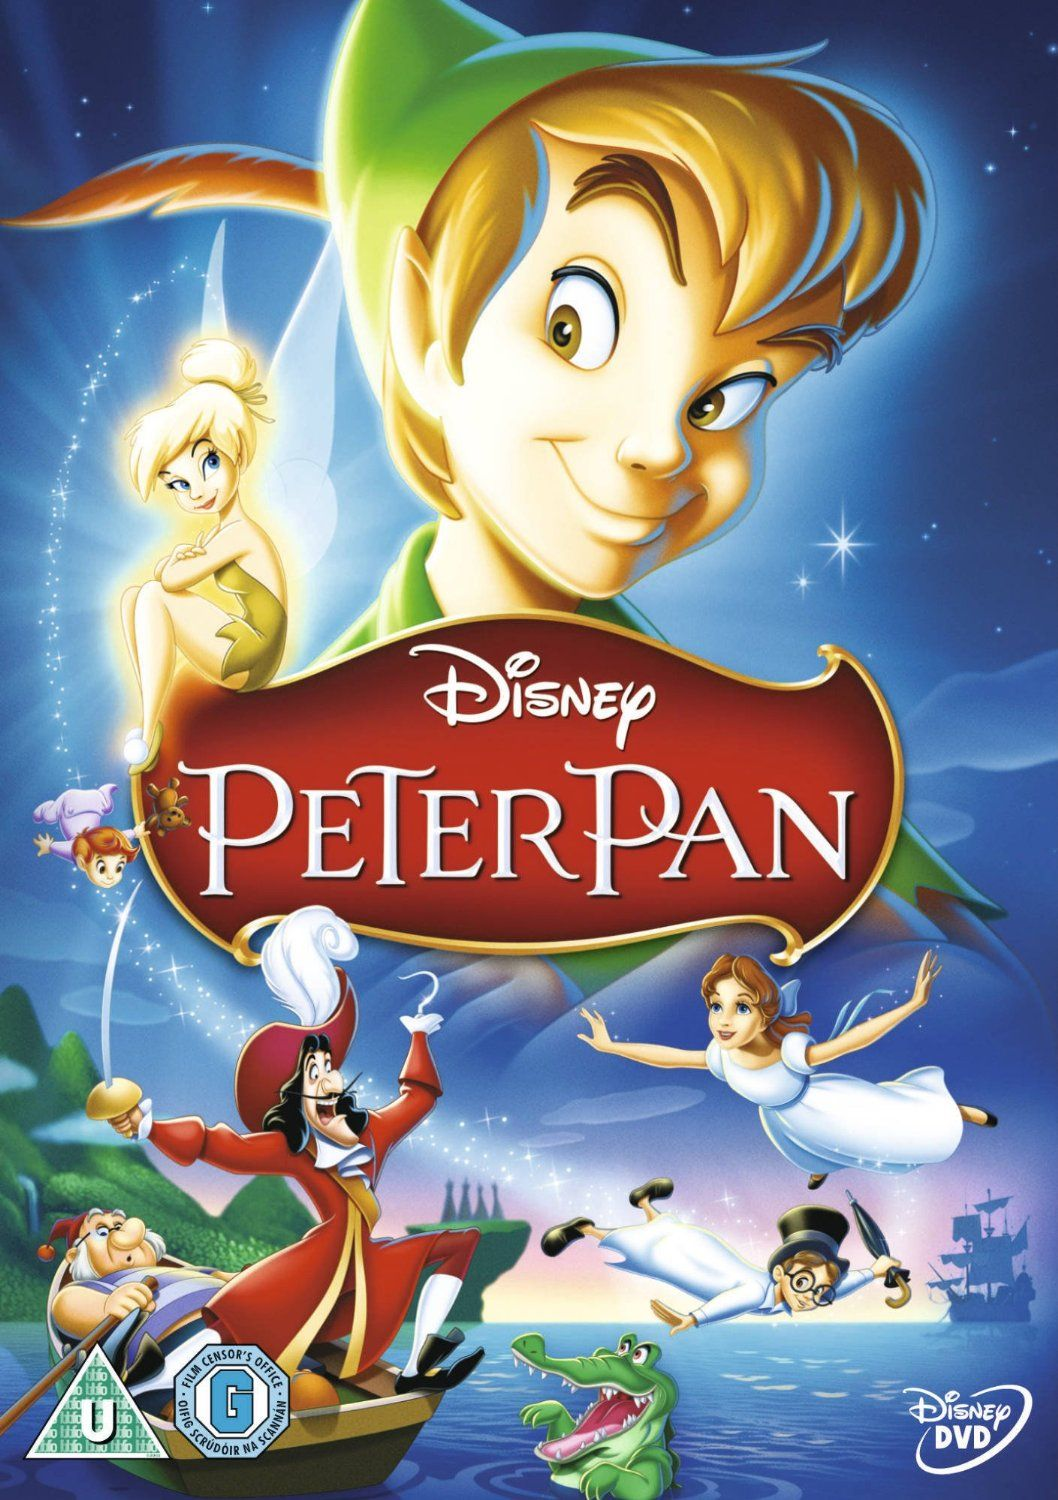 Peter Pan Dvd1953 Amazoncouk Bobby Driscoll Kathryn